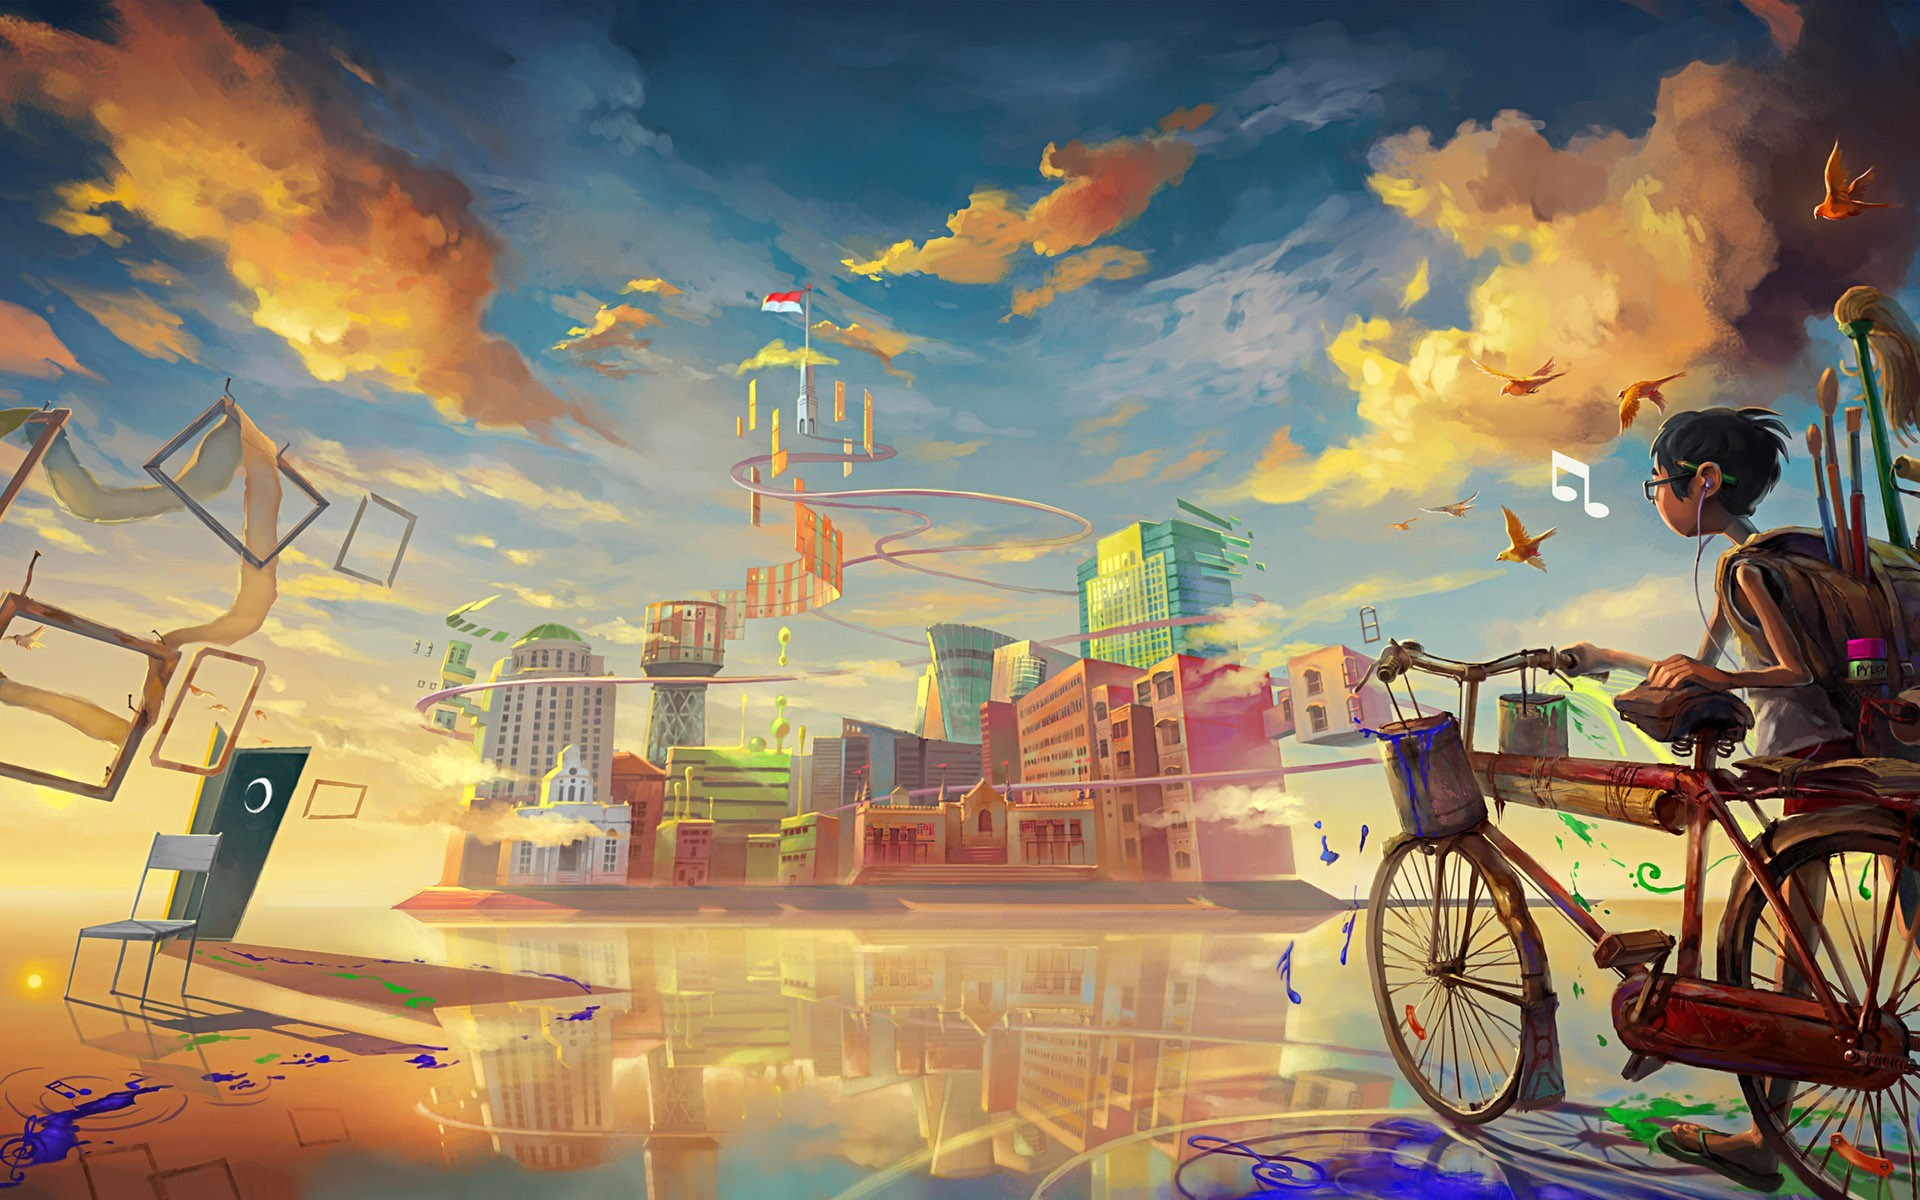 boy-biccycle-city-drawing-paint-art-HD-wallpaper